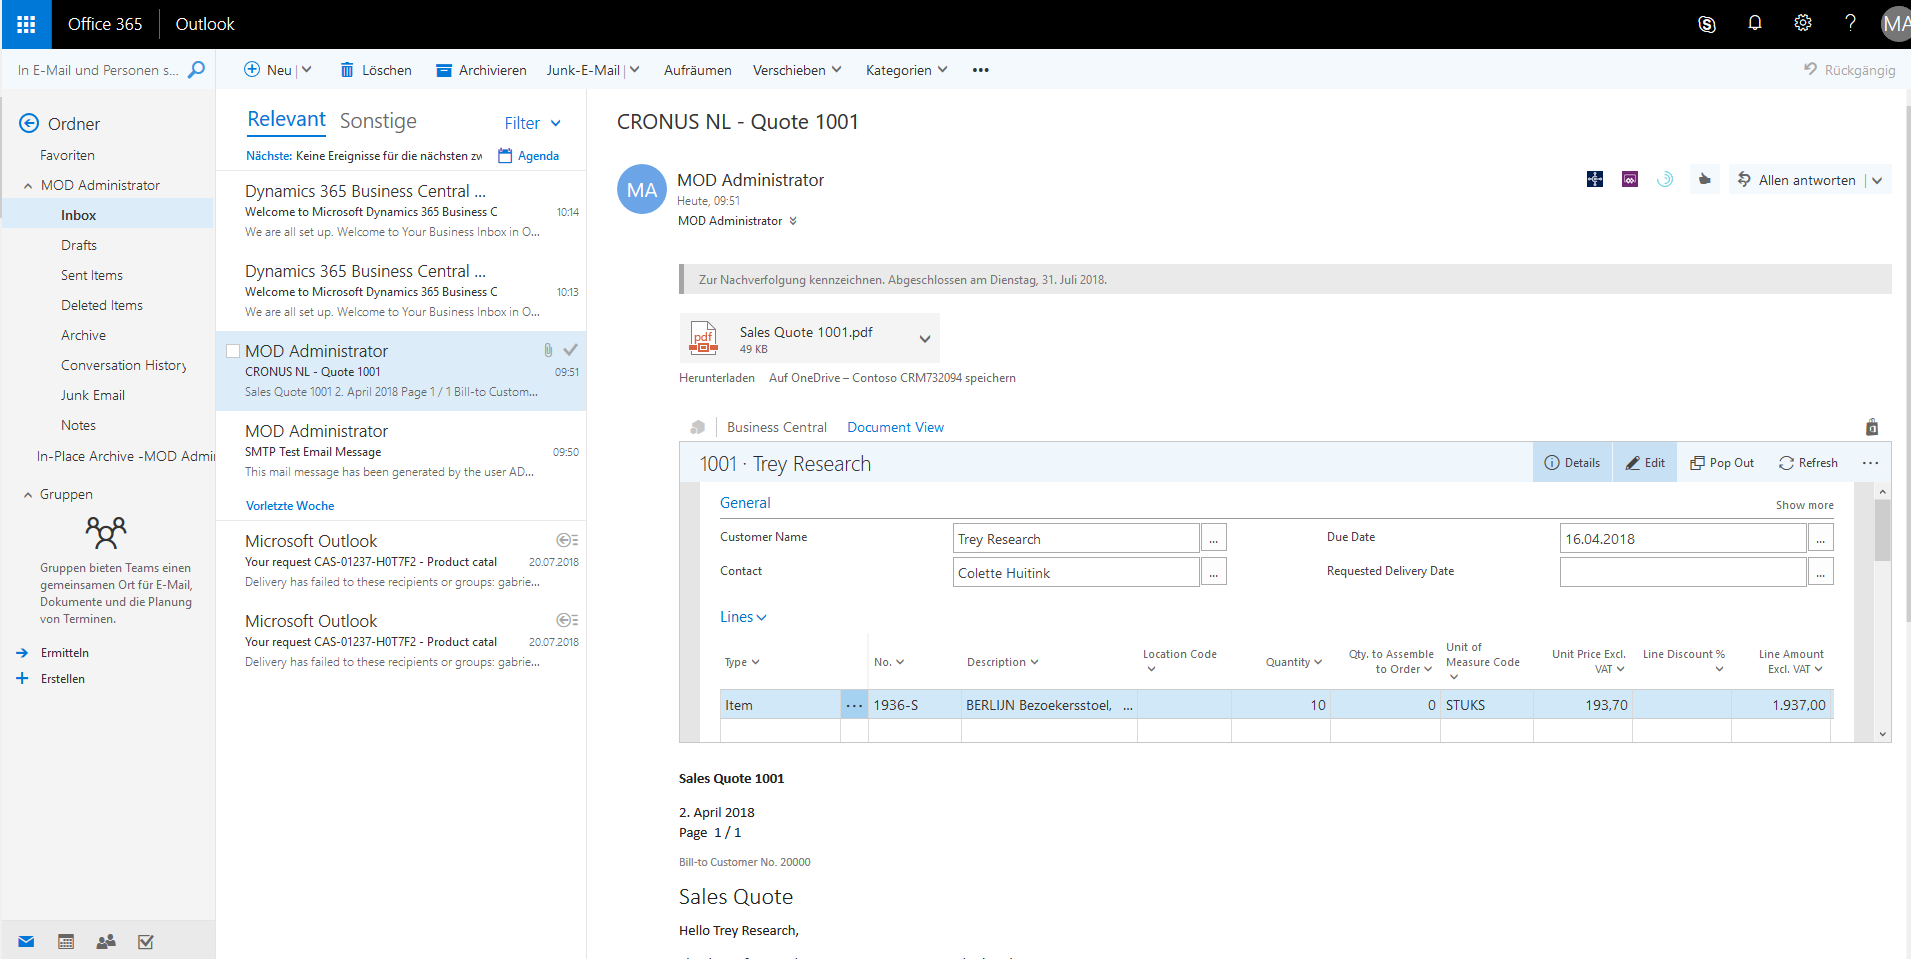 Dynamics 365 Business Central - Outlook Integration